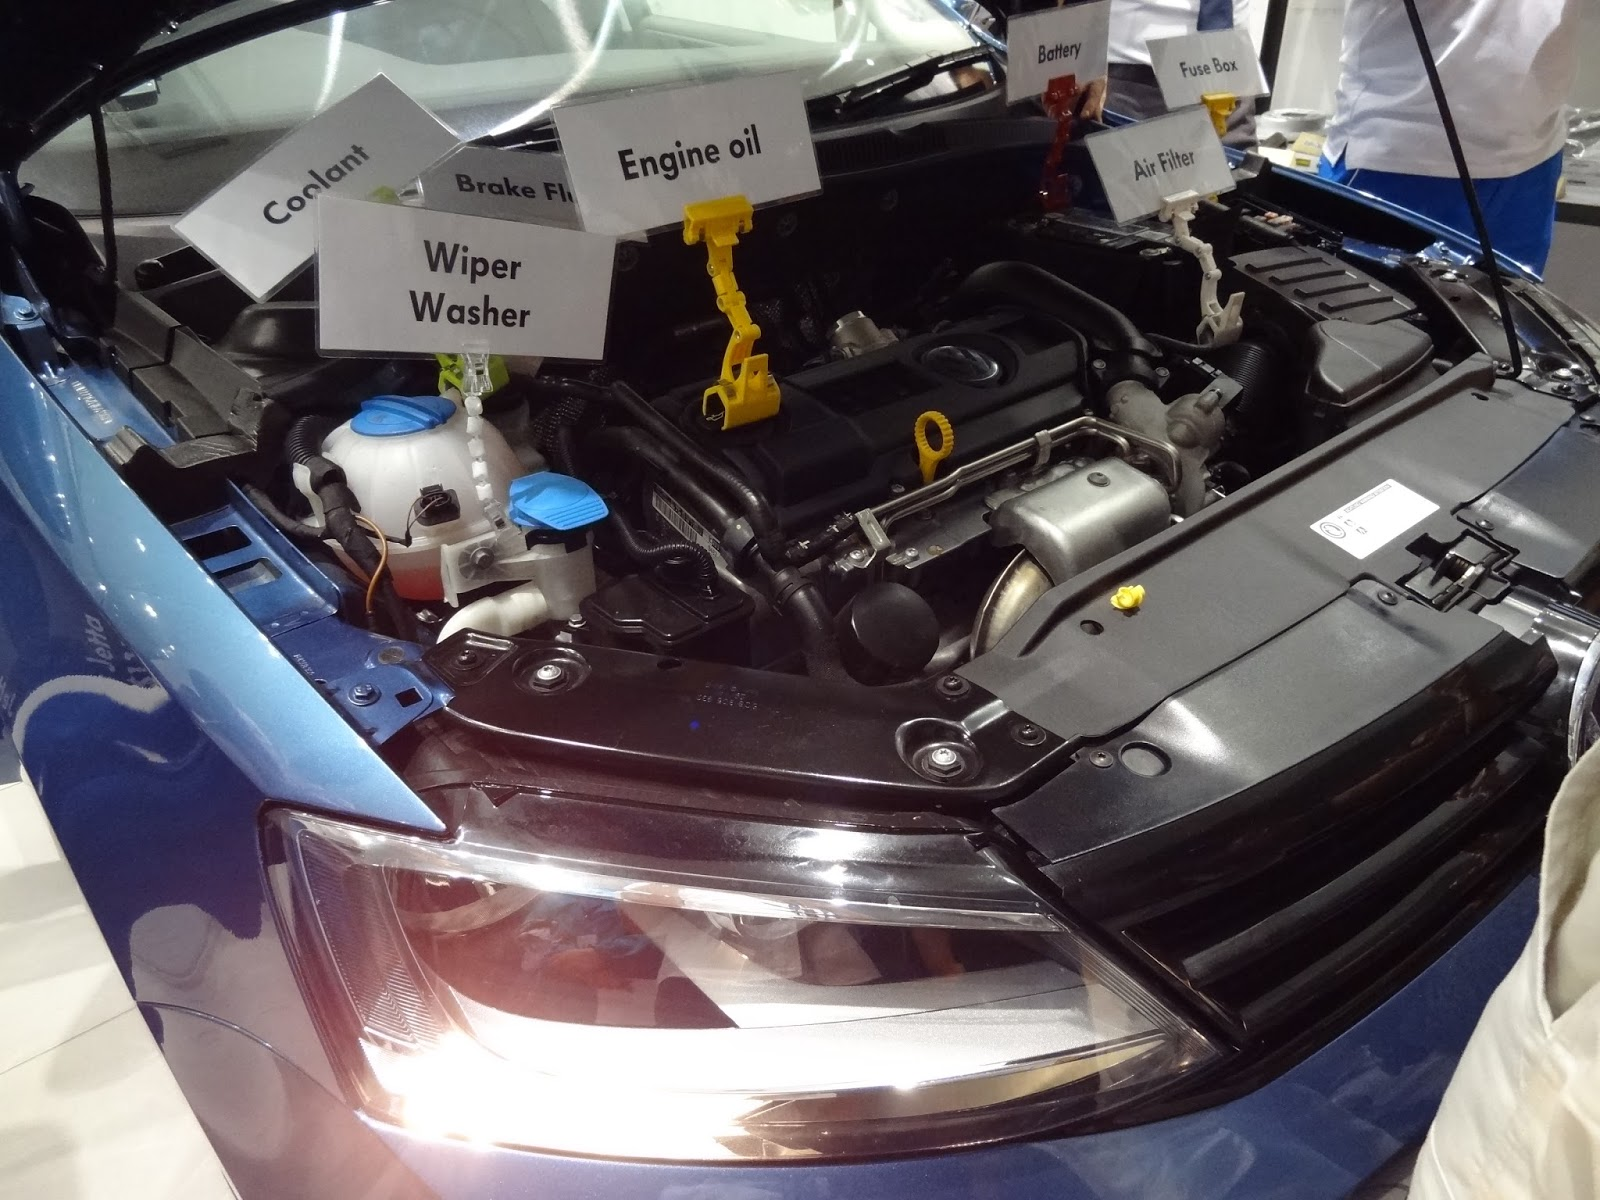 Shaun Owyeong Volkswagen Technology Showcase Workshop 18 Sep 2015 Vw Pat Fuse Box Location Over Here It Is The Understand Your Station Allows Drivers To Get Familiar With Car Engine And What Underneath